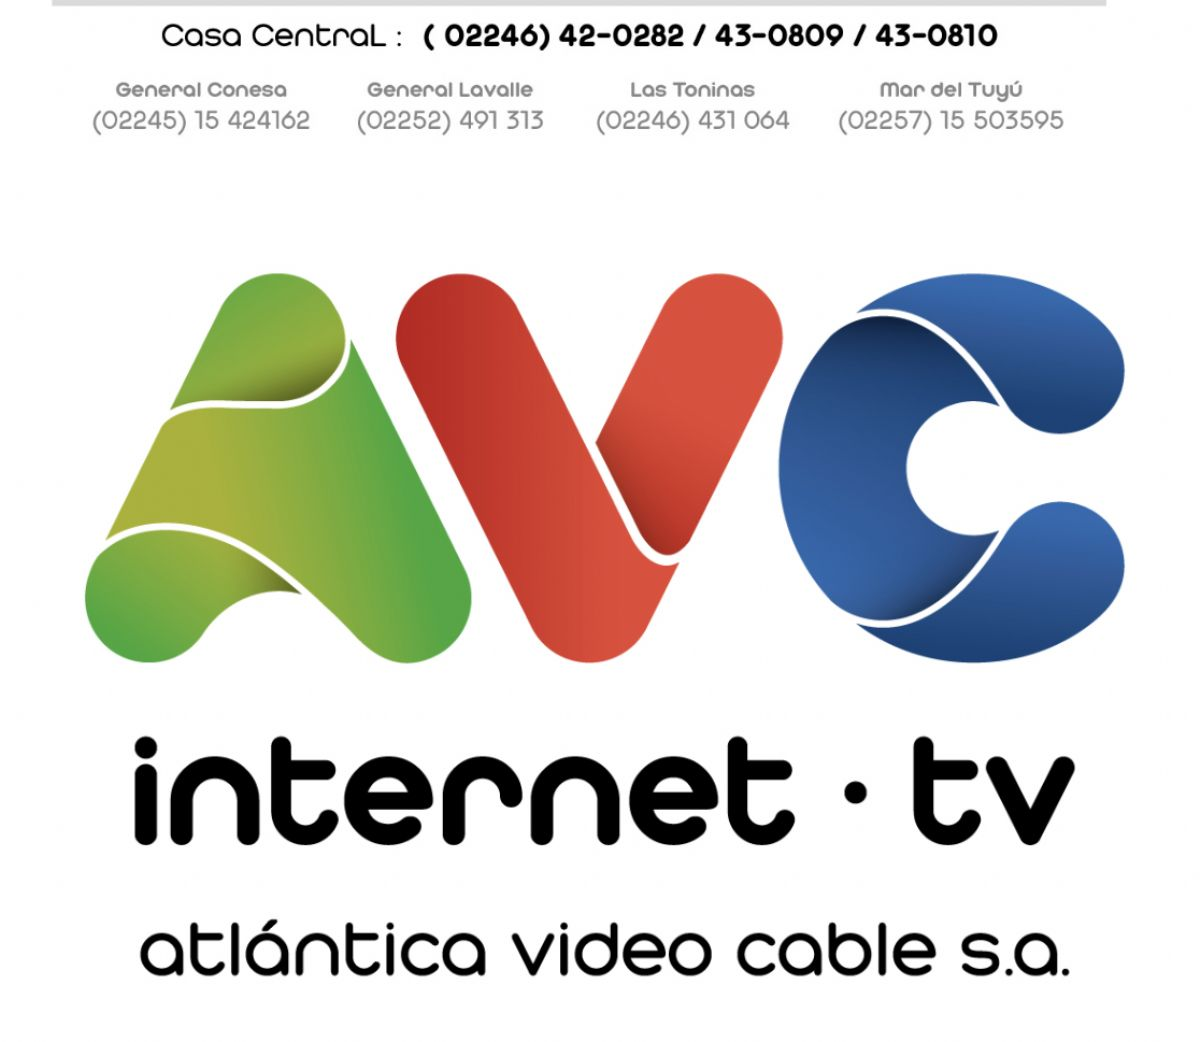 Atlántica Video Cable S.A